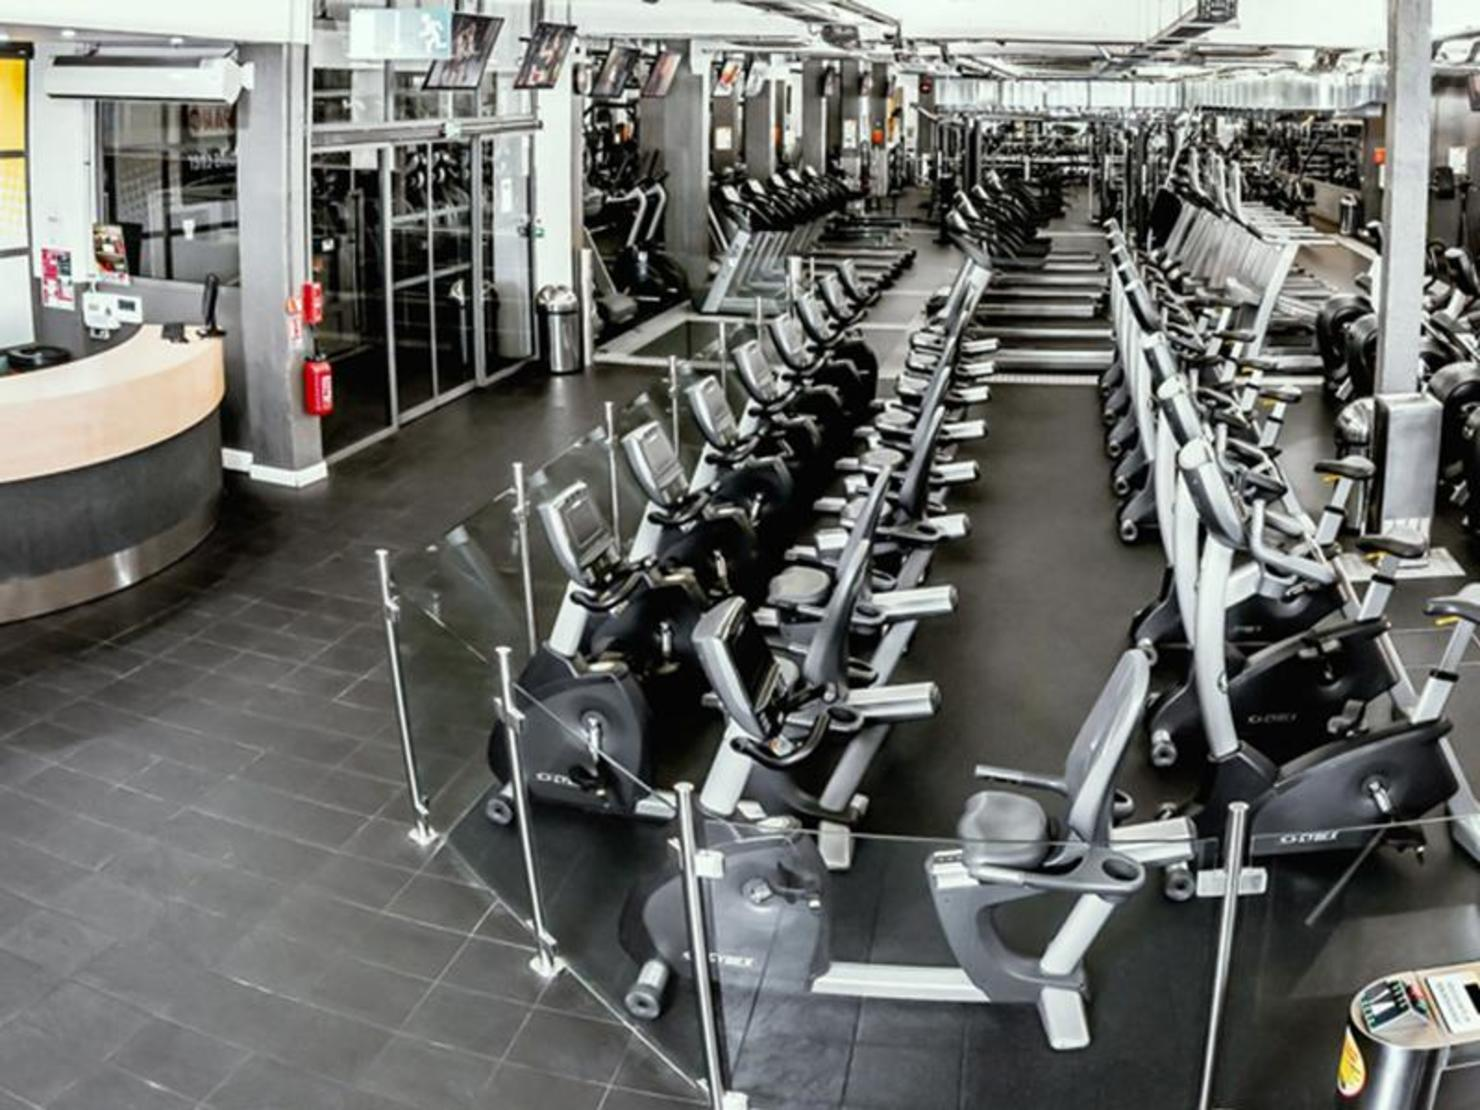 fitness park place de clichy paris tarifs avis horaires essai gratuit. Black Bedroom Furniture Sets. Home Design Ideas